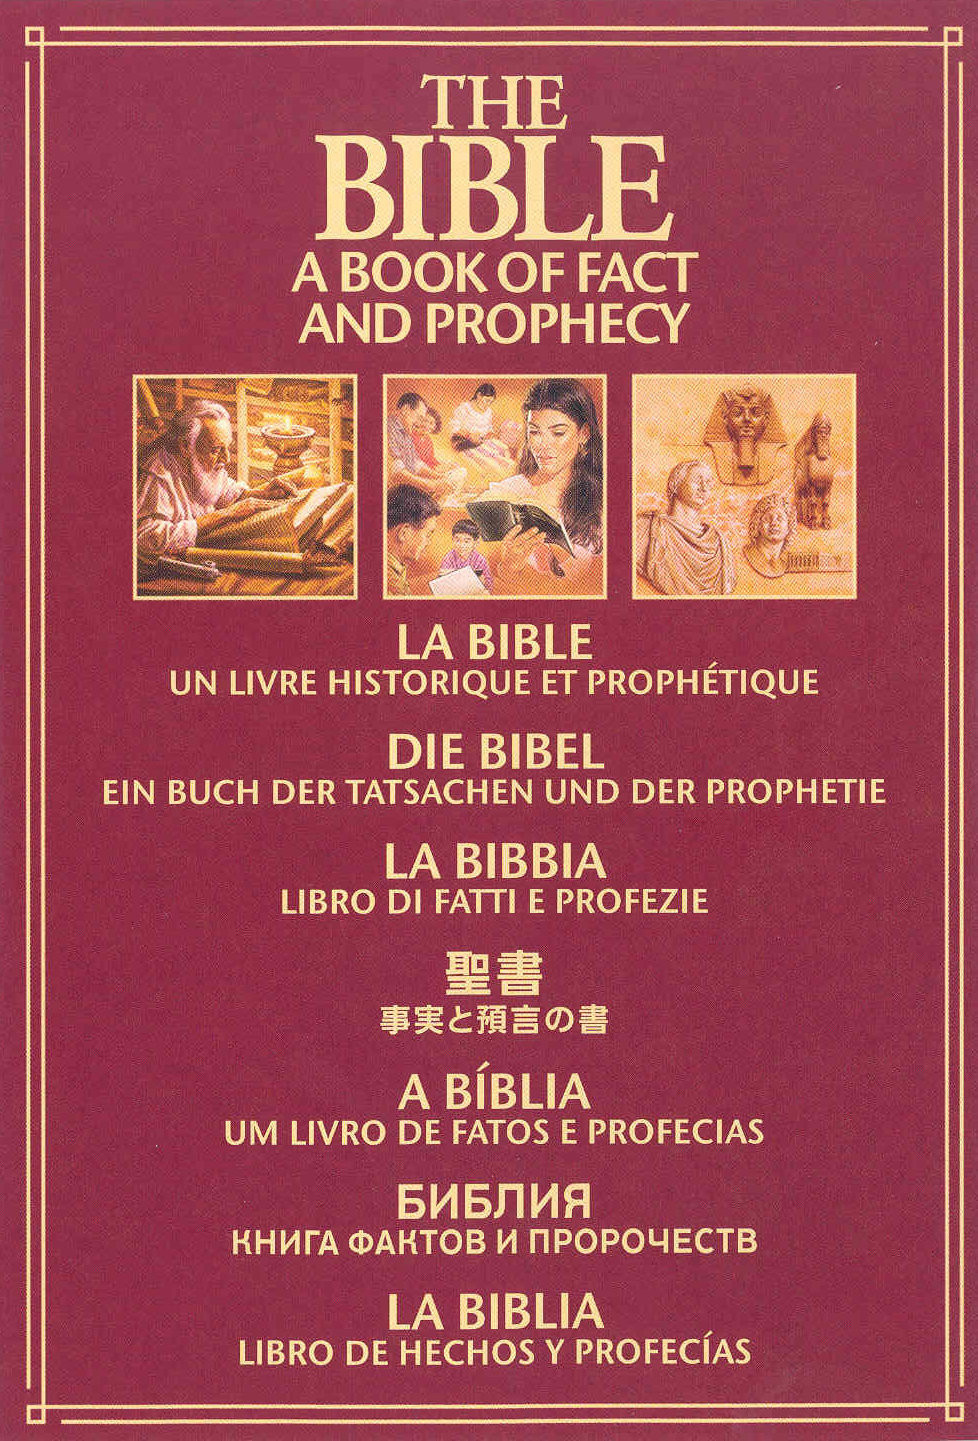 The Bible, a Book of Fact and Prophecy, Volume I: Accurate History